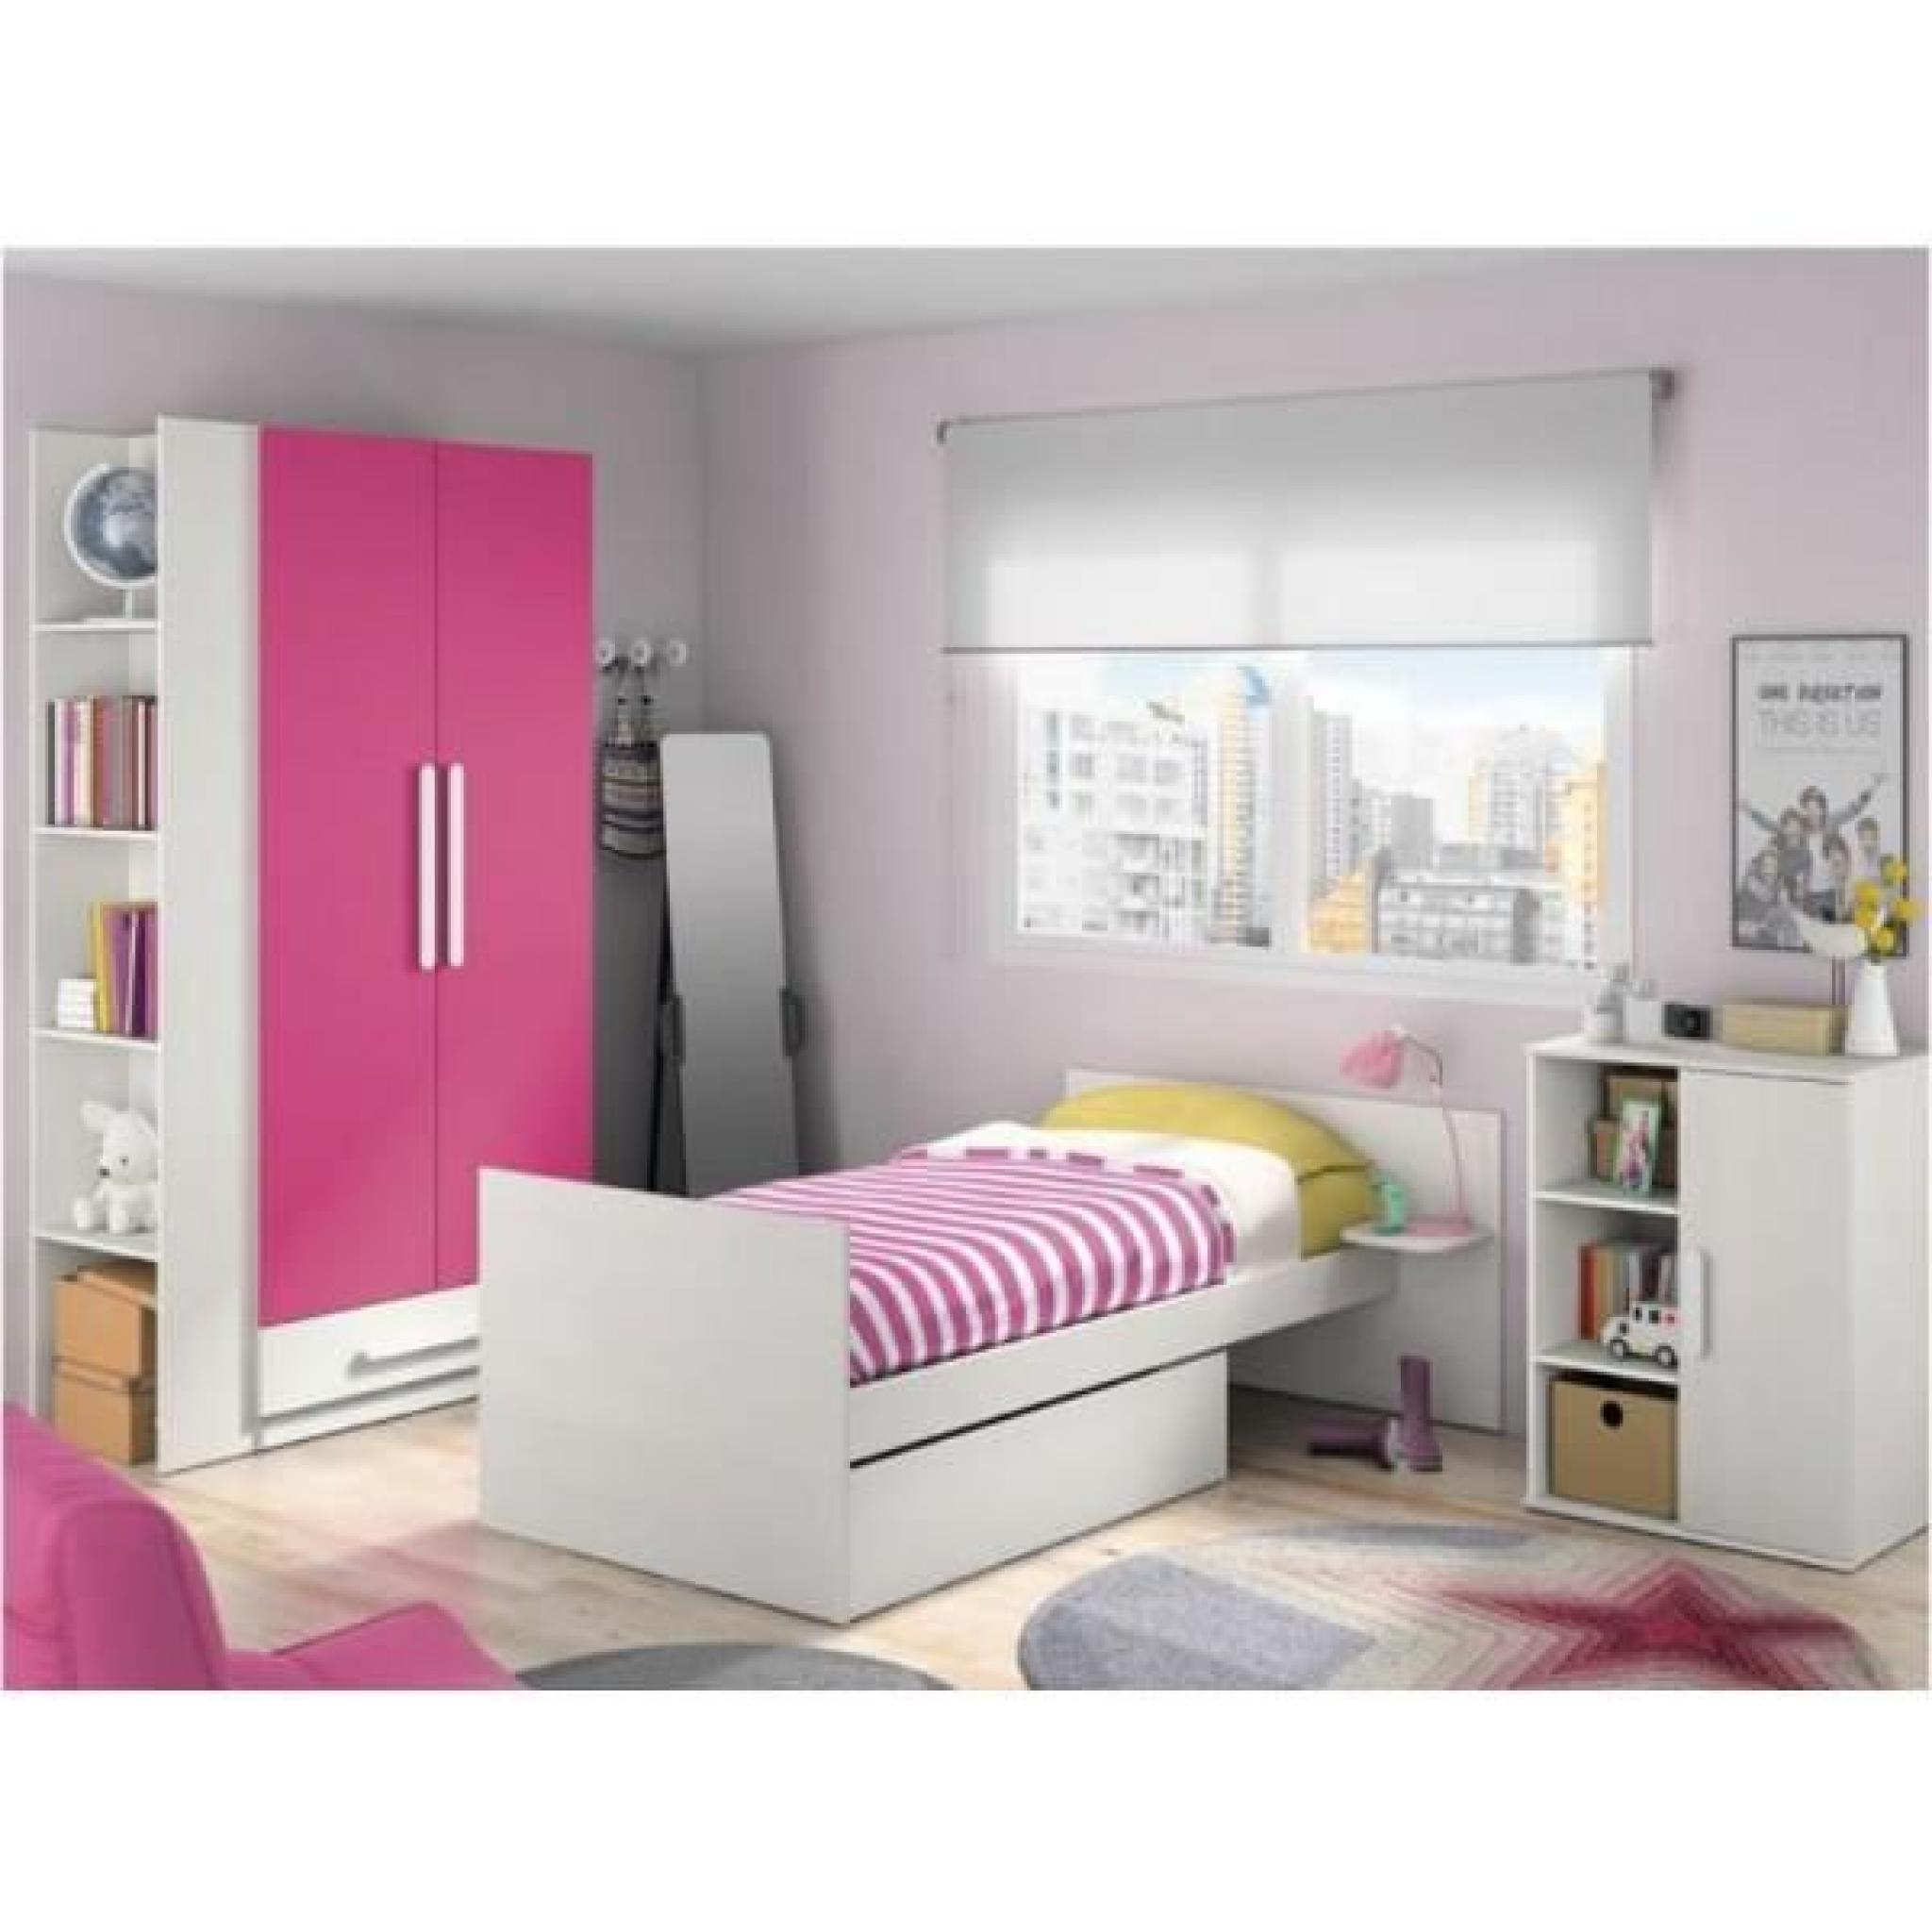 achat deco chambre bebe. Black Bedroom Furniture Sets. Home Design Ideas